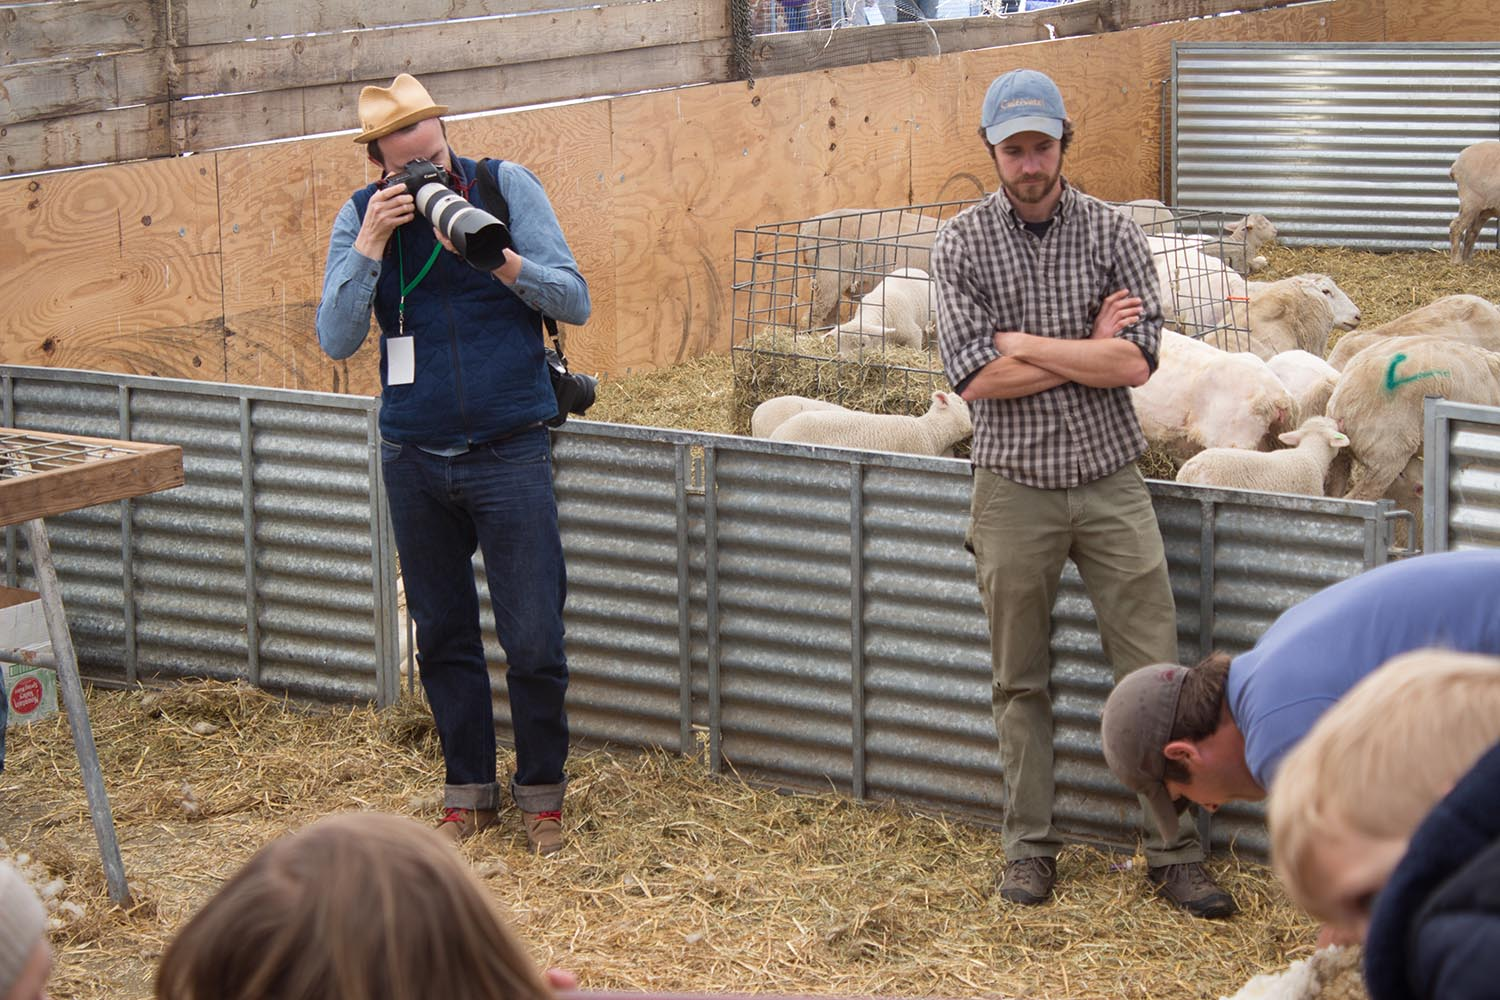 Sheep Shearing Farm life nature food agriculture Ben Hider Photographer Photography